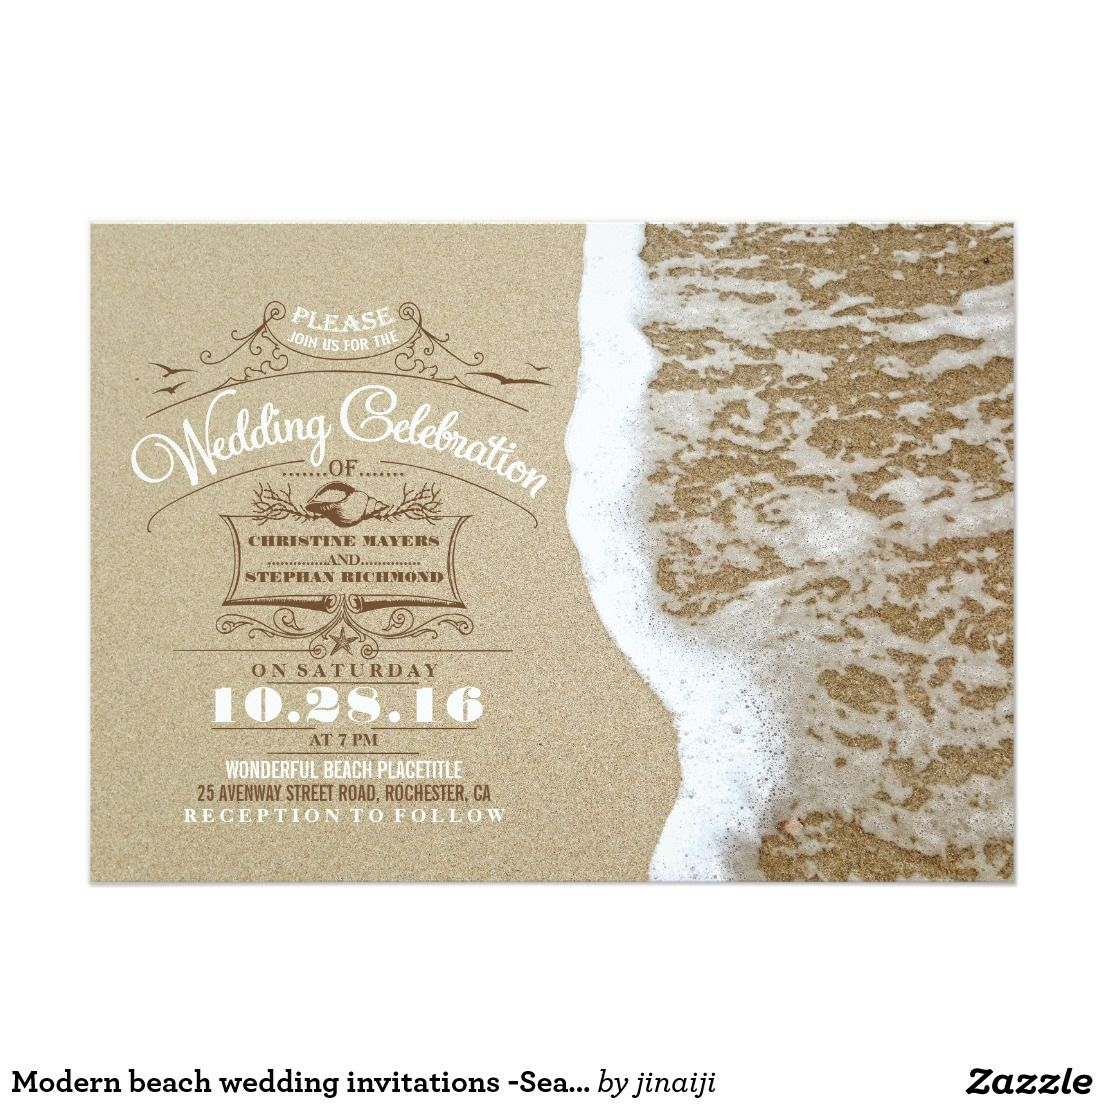 Modern beach wedding invitations -Sea Foam Sand | Modern, Beaches ...